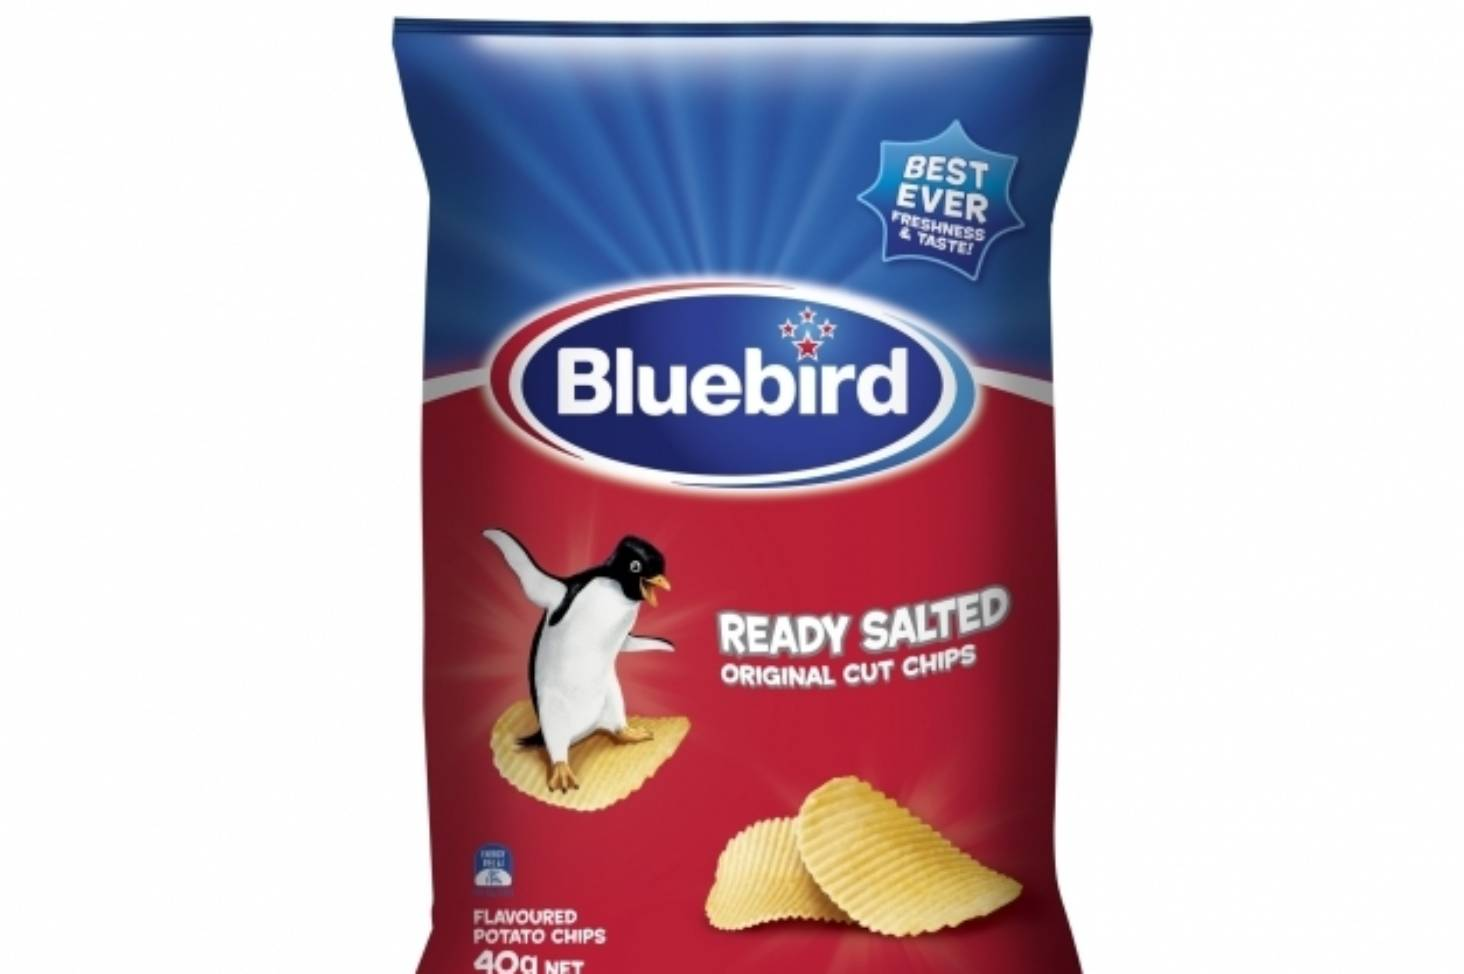 Indoor Potato Chips Which May Contain Plasticpieces Bluebird Recalling Five Batches Potato Chips Which May Contain Potato Chip Recall Canada Herr S Potato Chip Recall Bluebird Recalling Five Batches nice food Potato Chip Recall